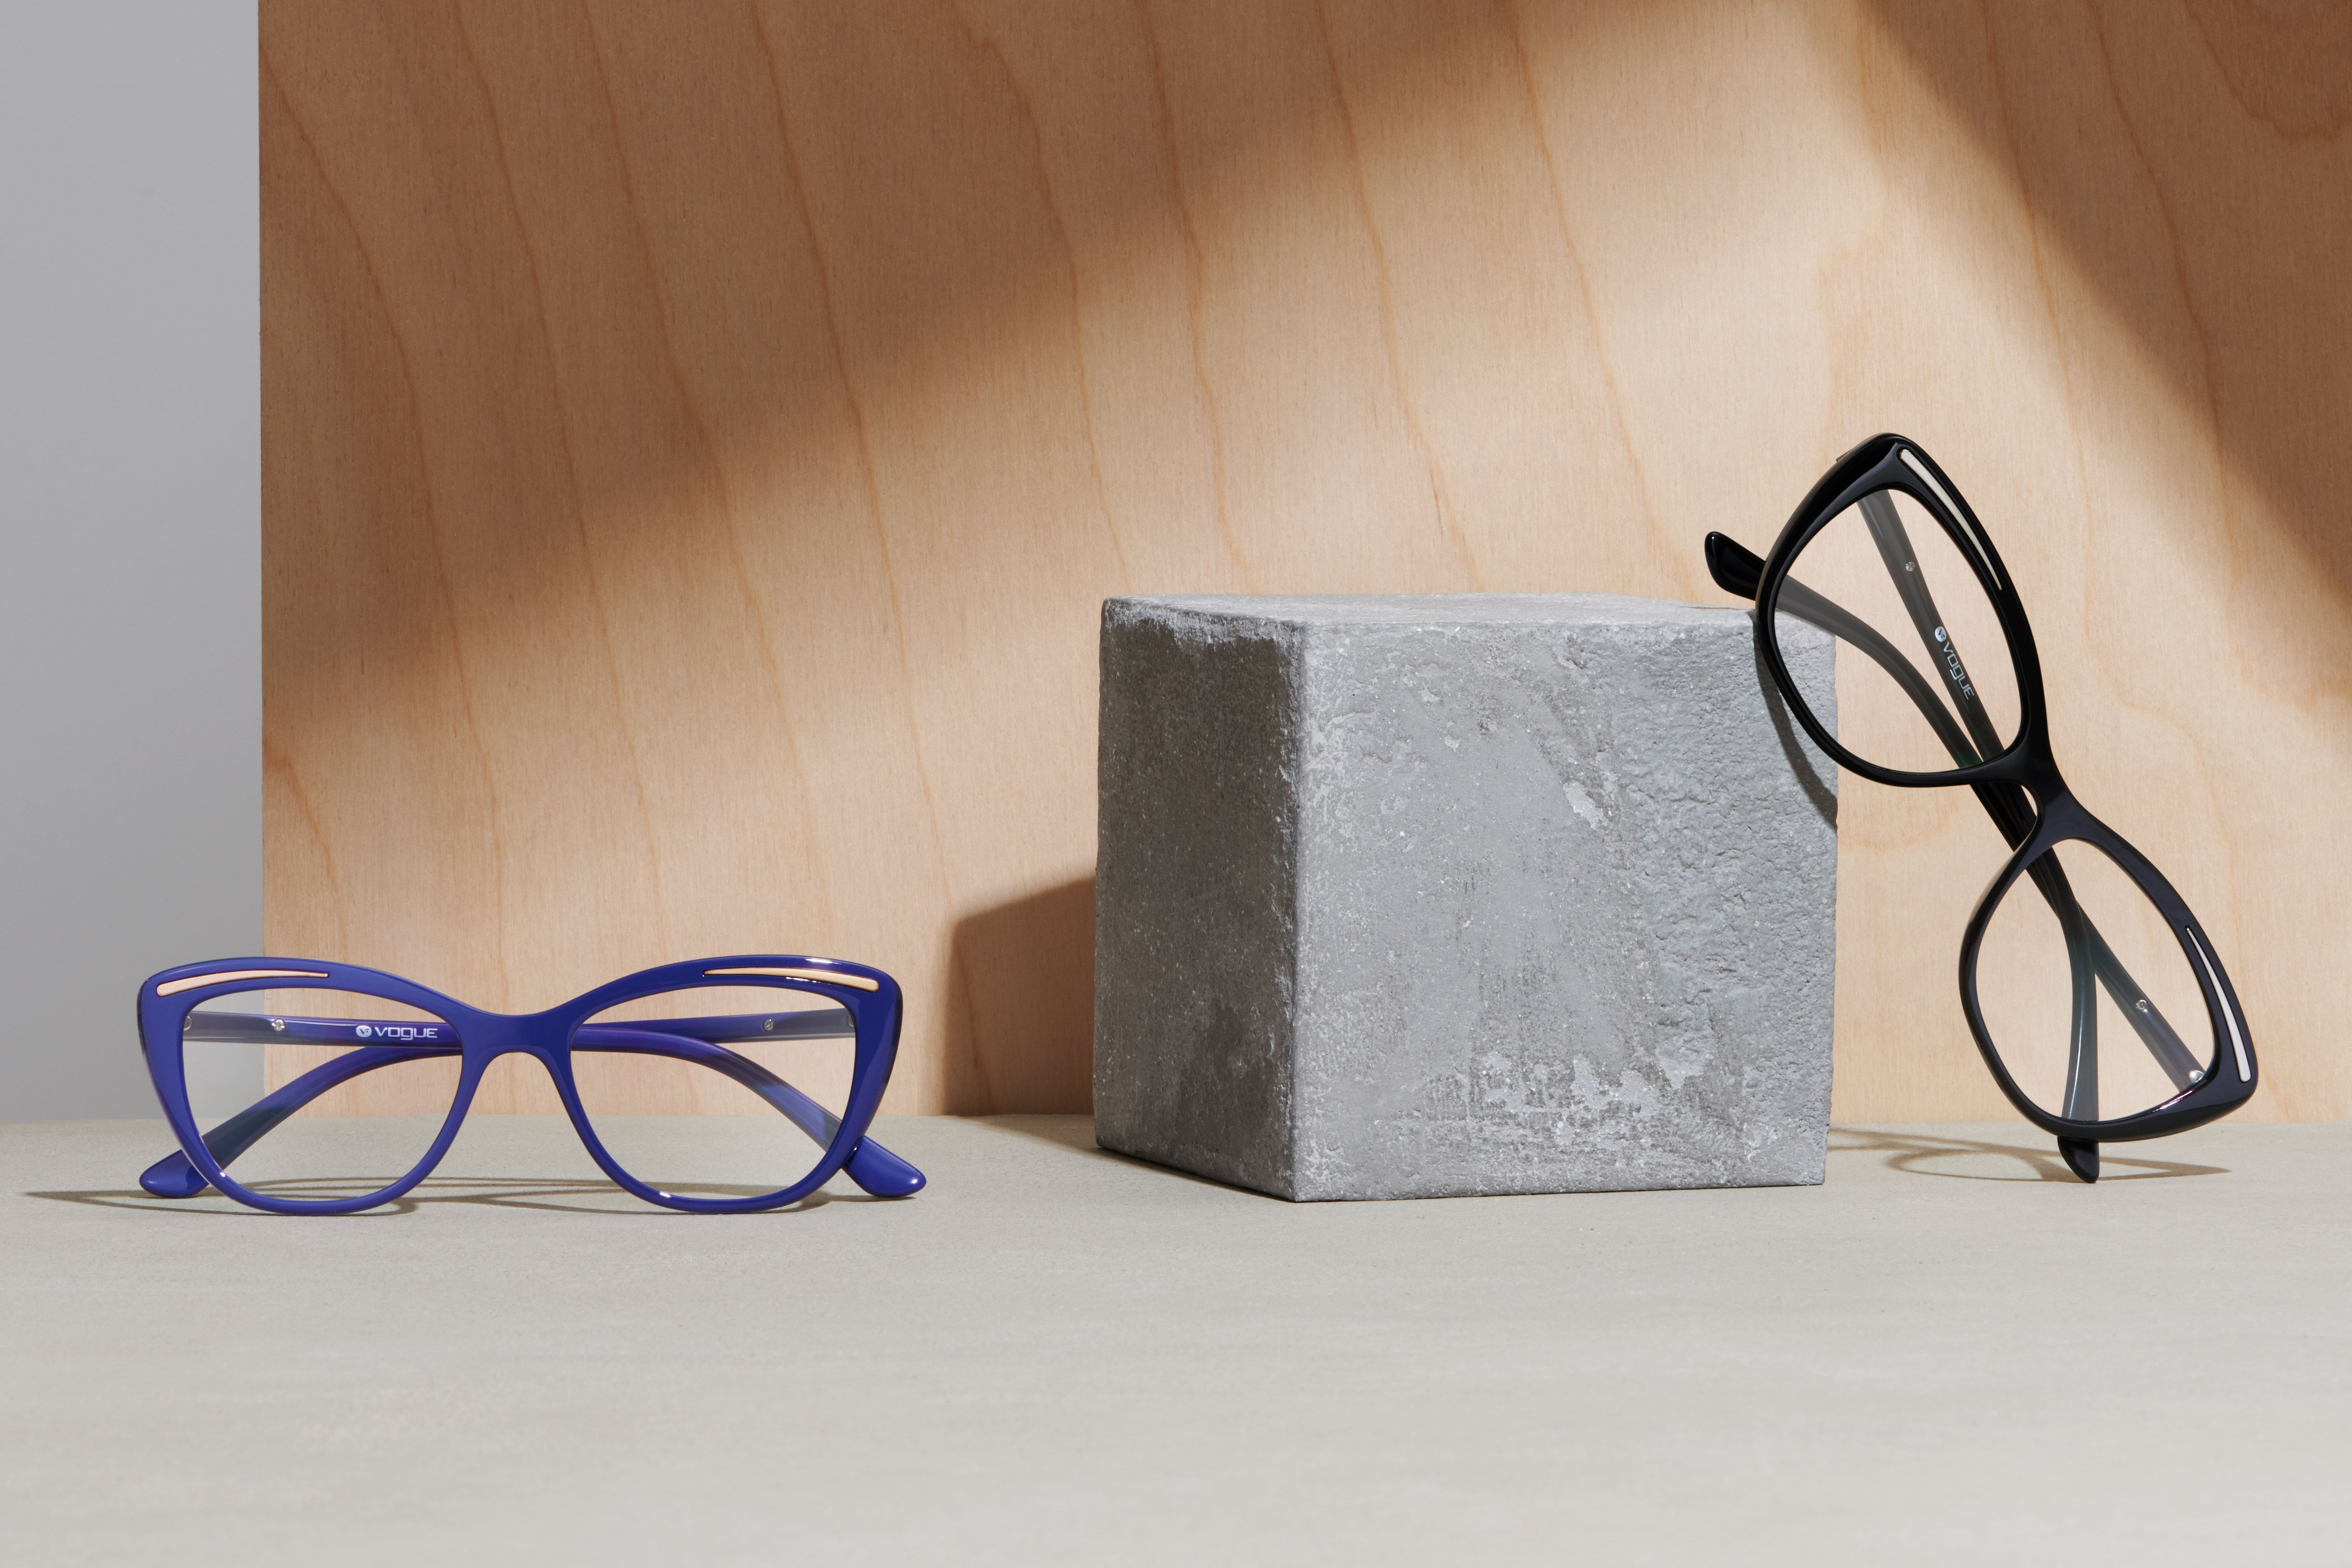 THE FRAMES THAT WILL TAKE YOUR STYLE TO NEW HEIGHTS